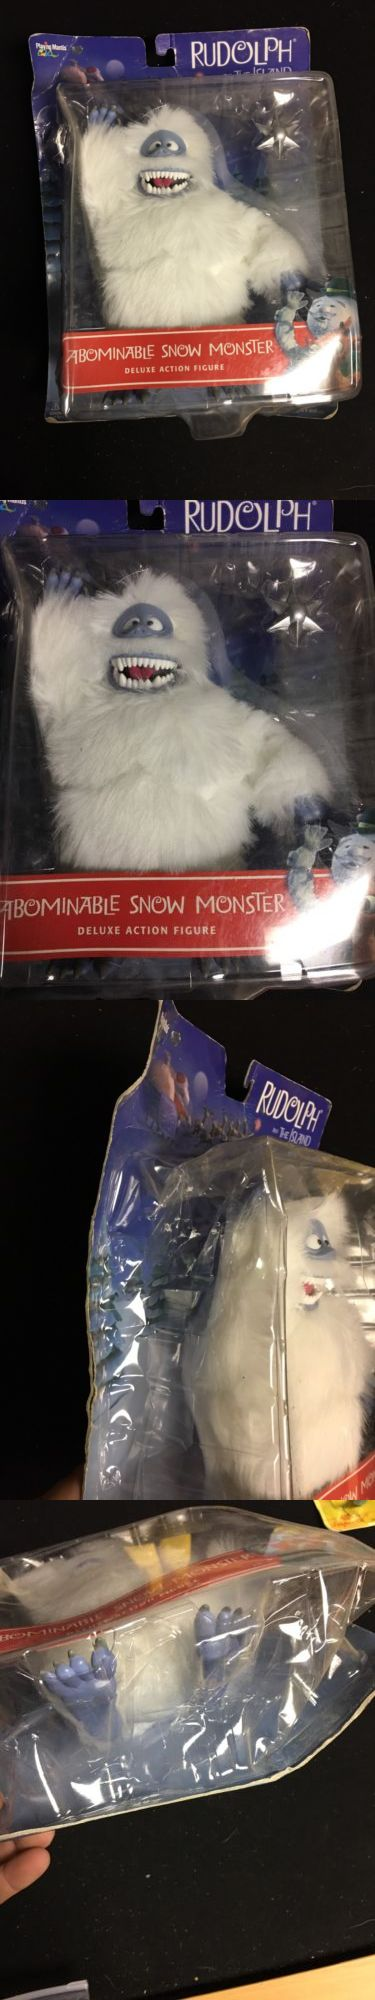 Rudolph 95252: Rudolph And The Island Of Misfit Toys Deluxe Abominable Snowman (Bumble) Figure -> BUY IT NOW ONLY: $44.99 on eBay!